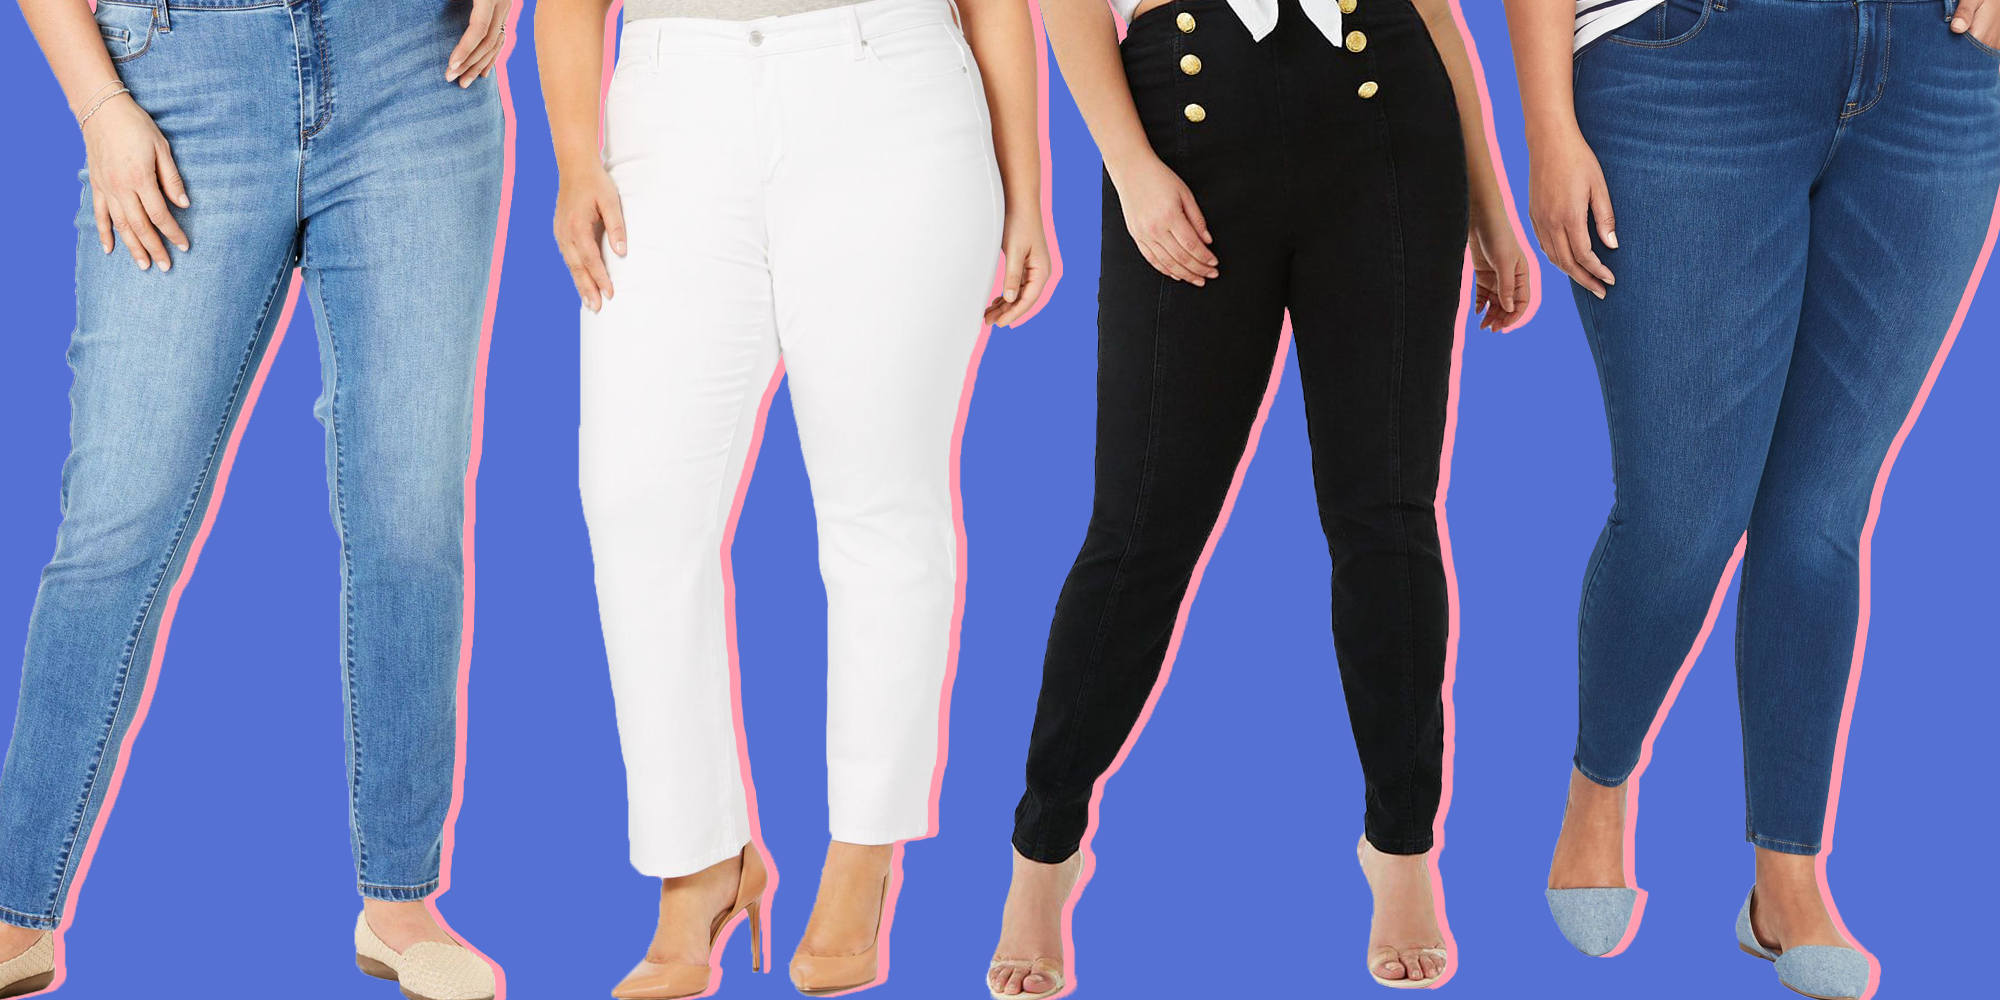 f6b152bf628a2 16 Plus Size Jeans In Every Style 2018 - Skinny, High Waisted, More